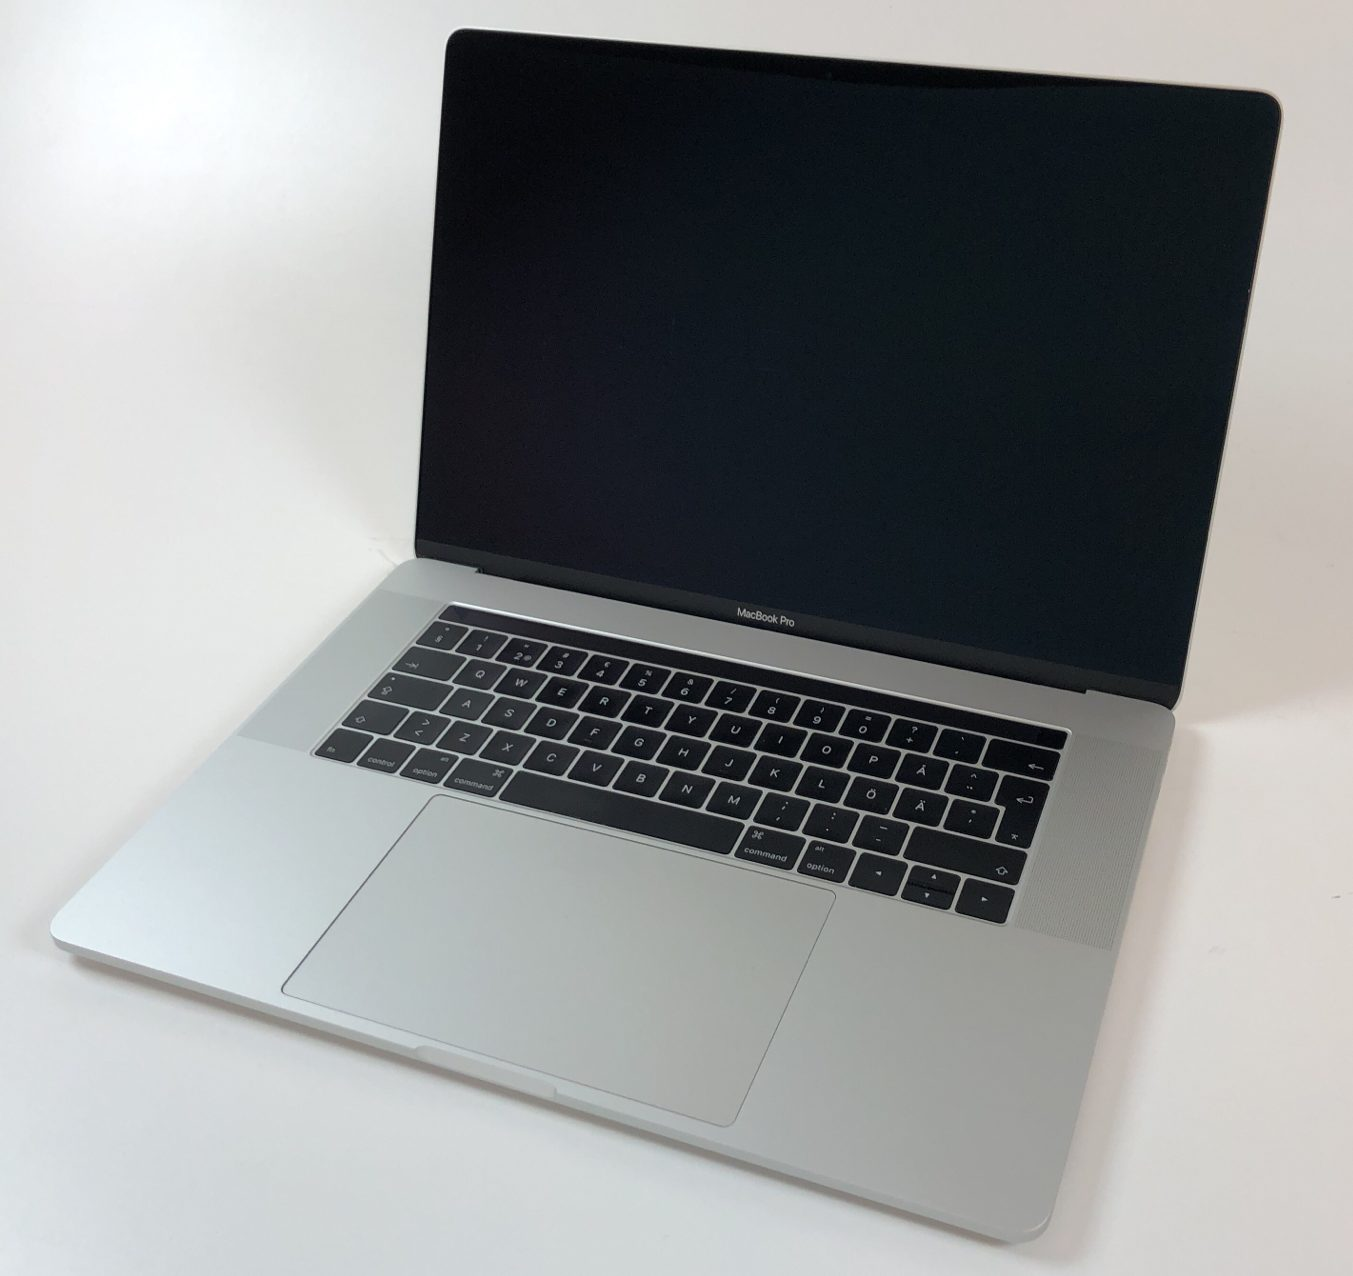 "MacBook Pro 15"" Touch Bar Late 2016 (Intel Quad-Core i7 2.9 GHz 16 GB RAM 512 GB SSD), Space Gray, Intel Quad-Core i7 2.9 GHz, 16 GB RAM, 512 GB SSD, Kuva 1"